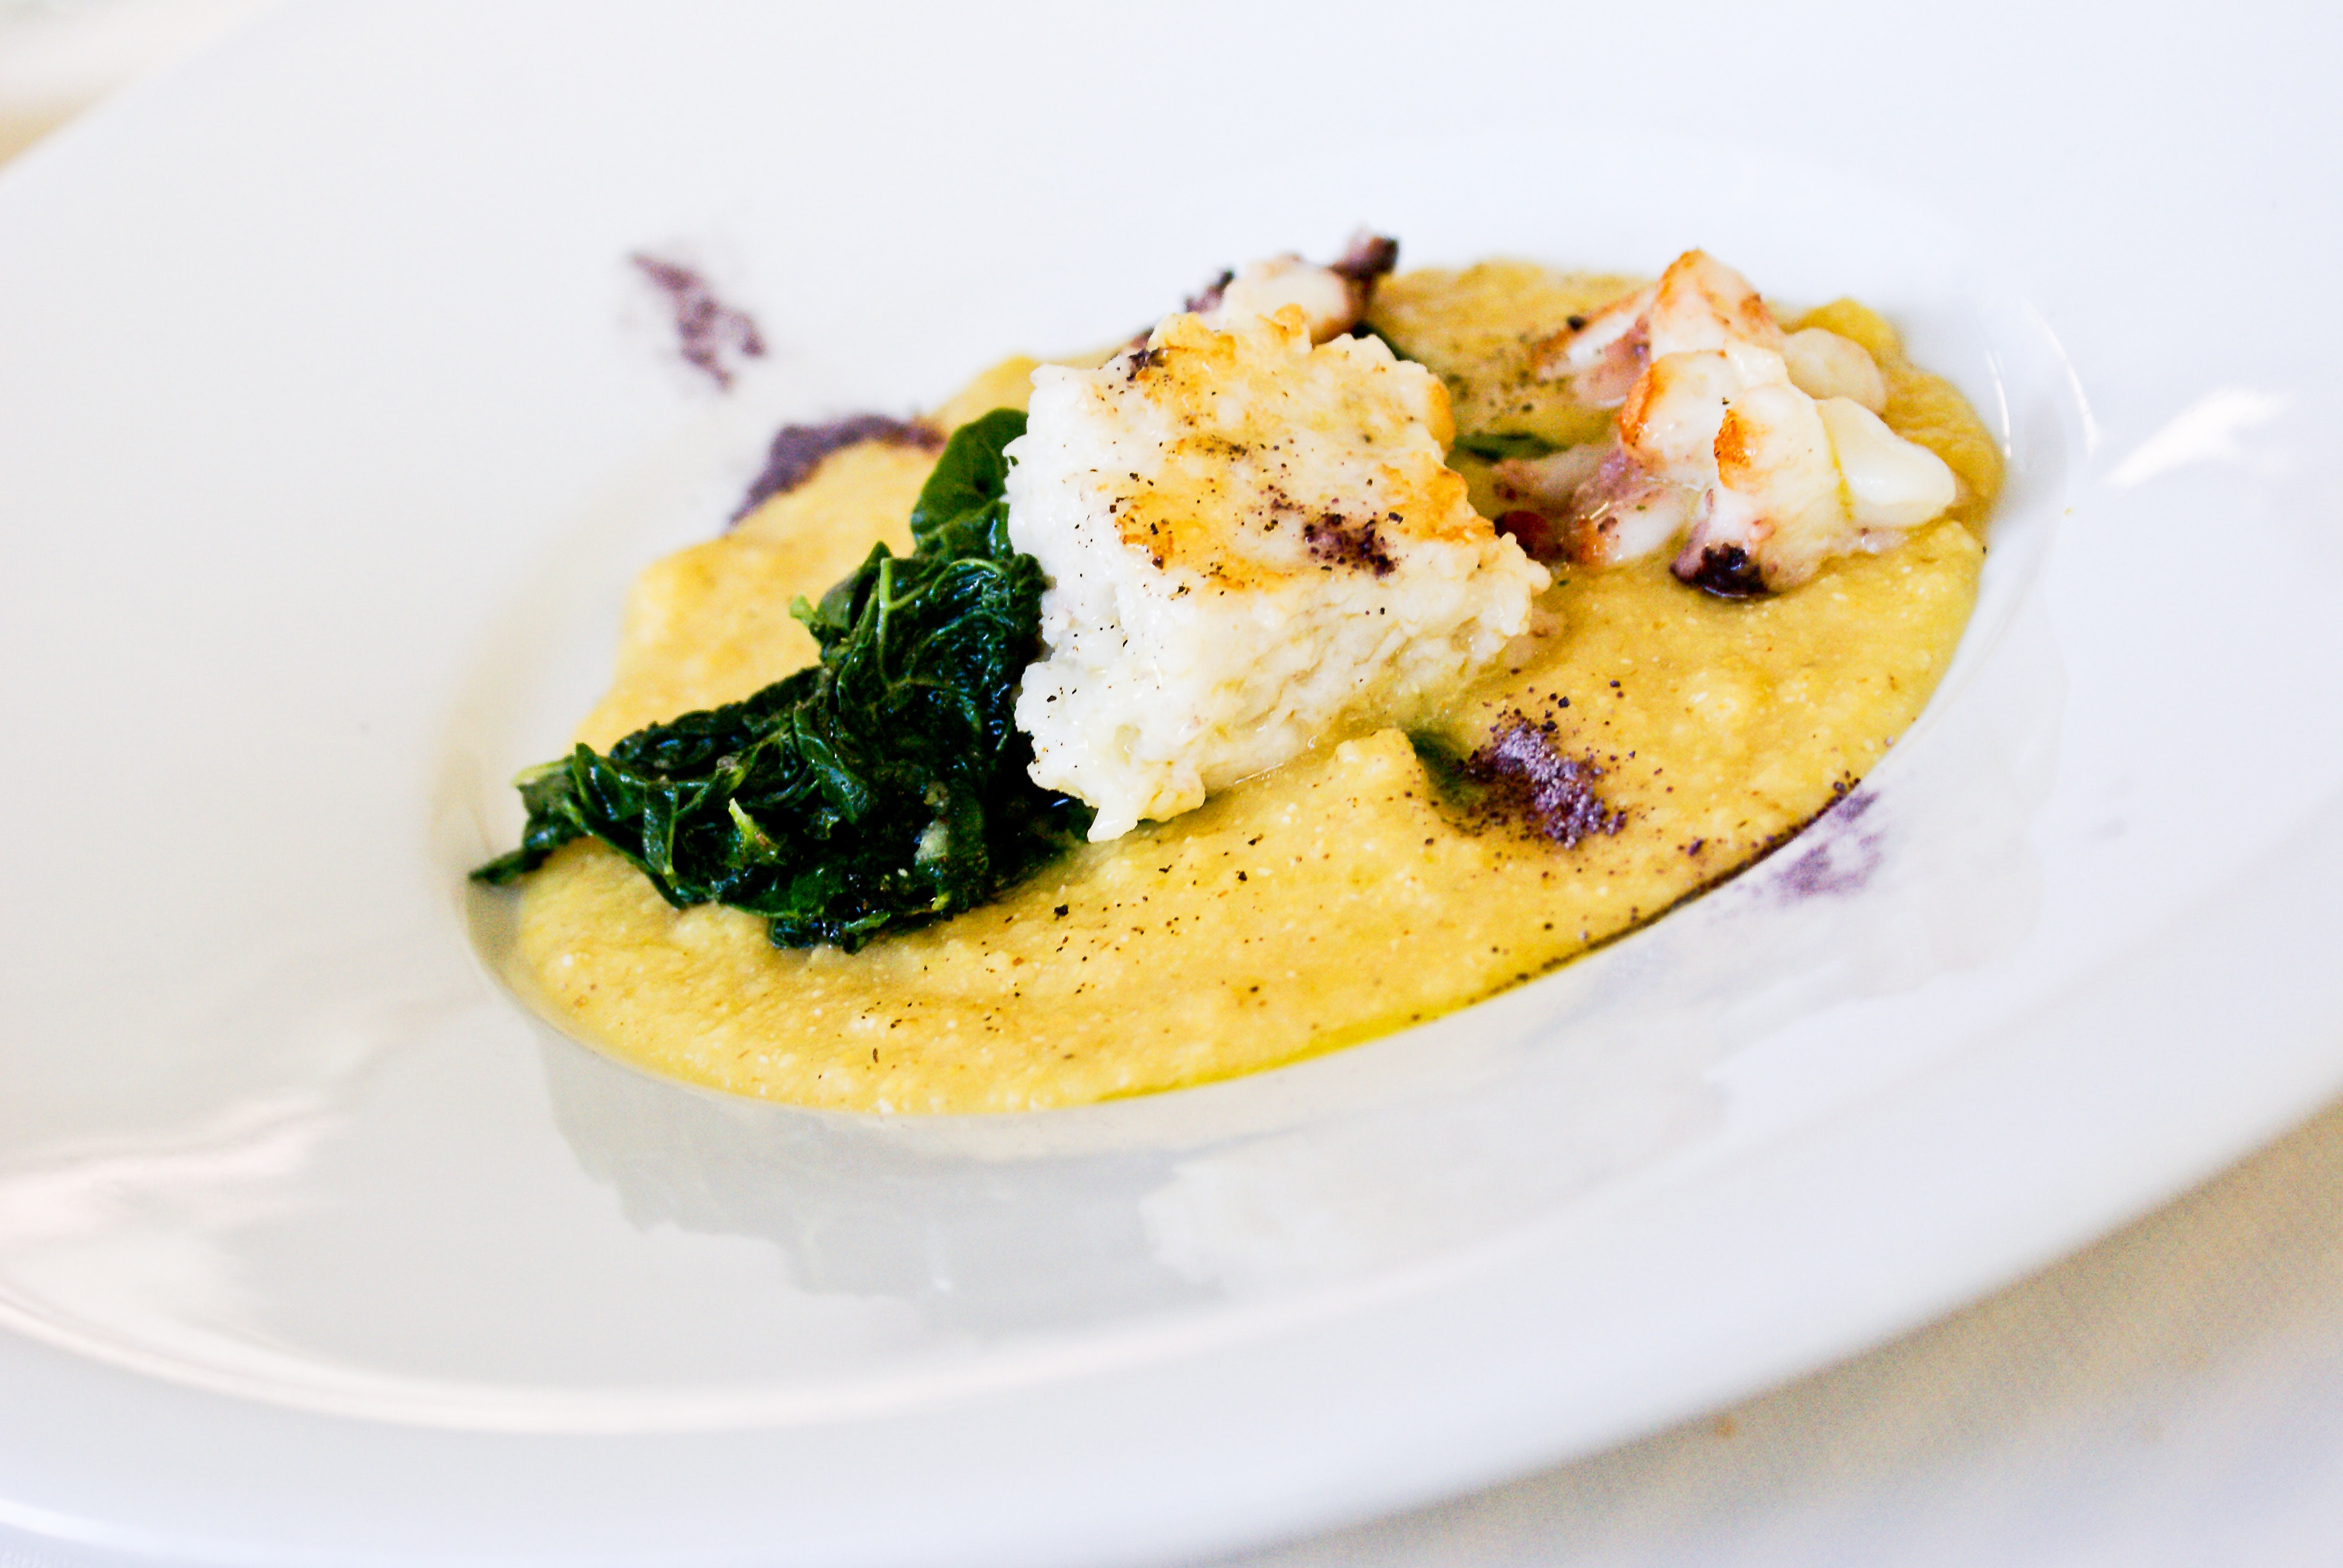 Close Up Photo of Risotto Dish, Cooking, Tasty, Sauce, Restaurant, HQ Photo